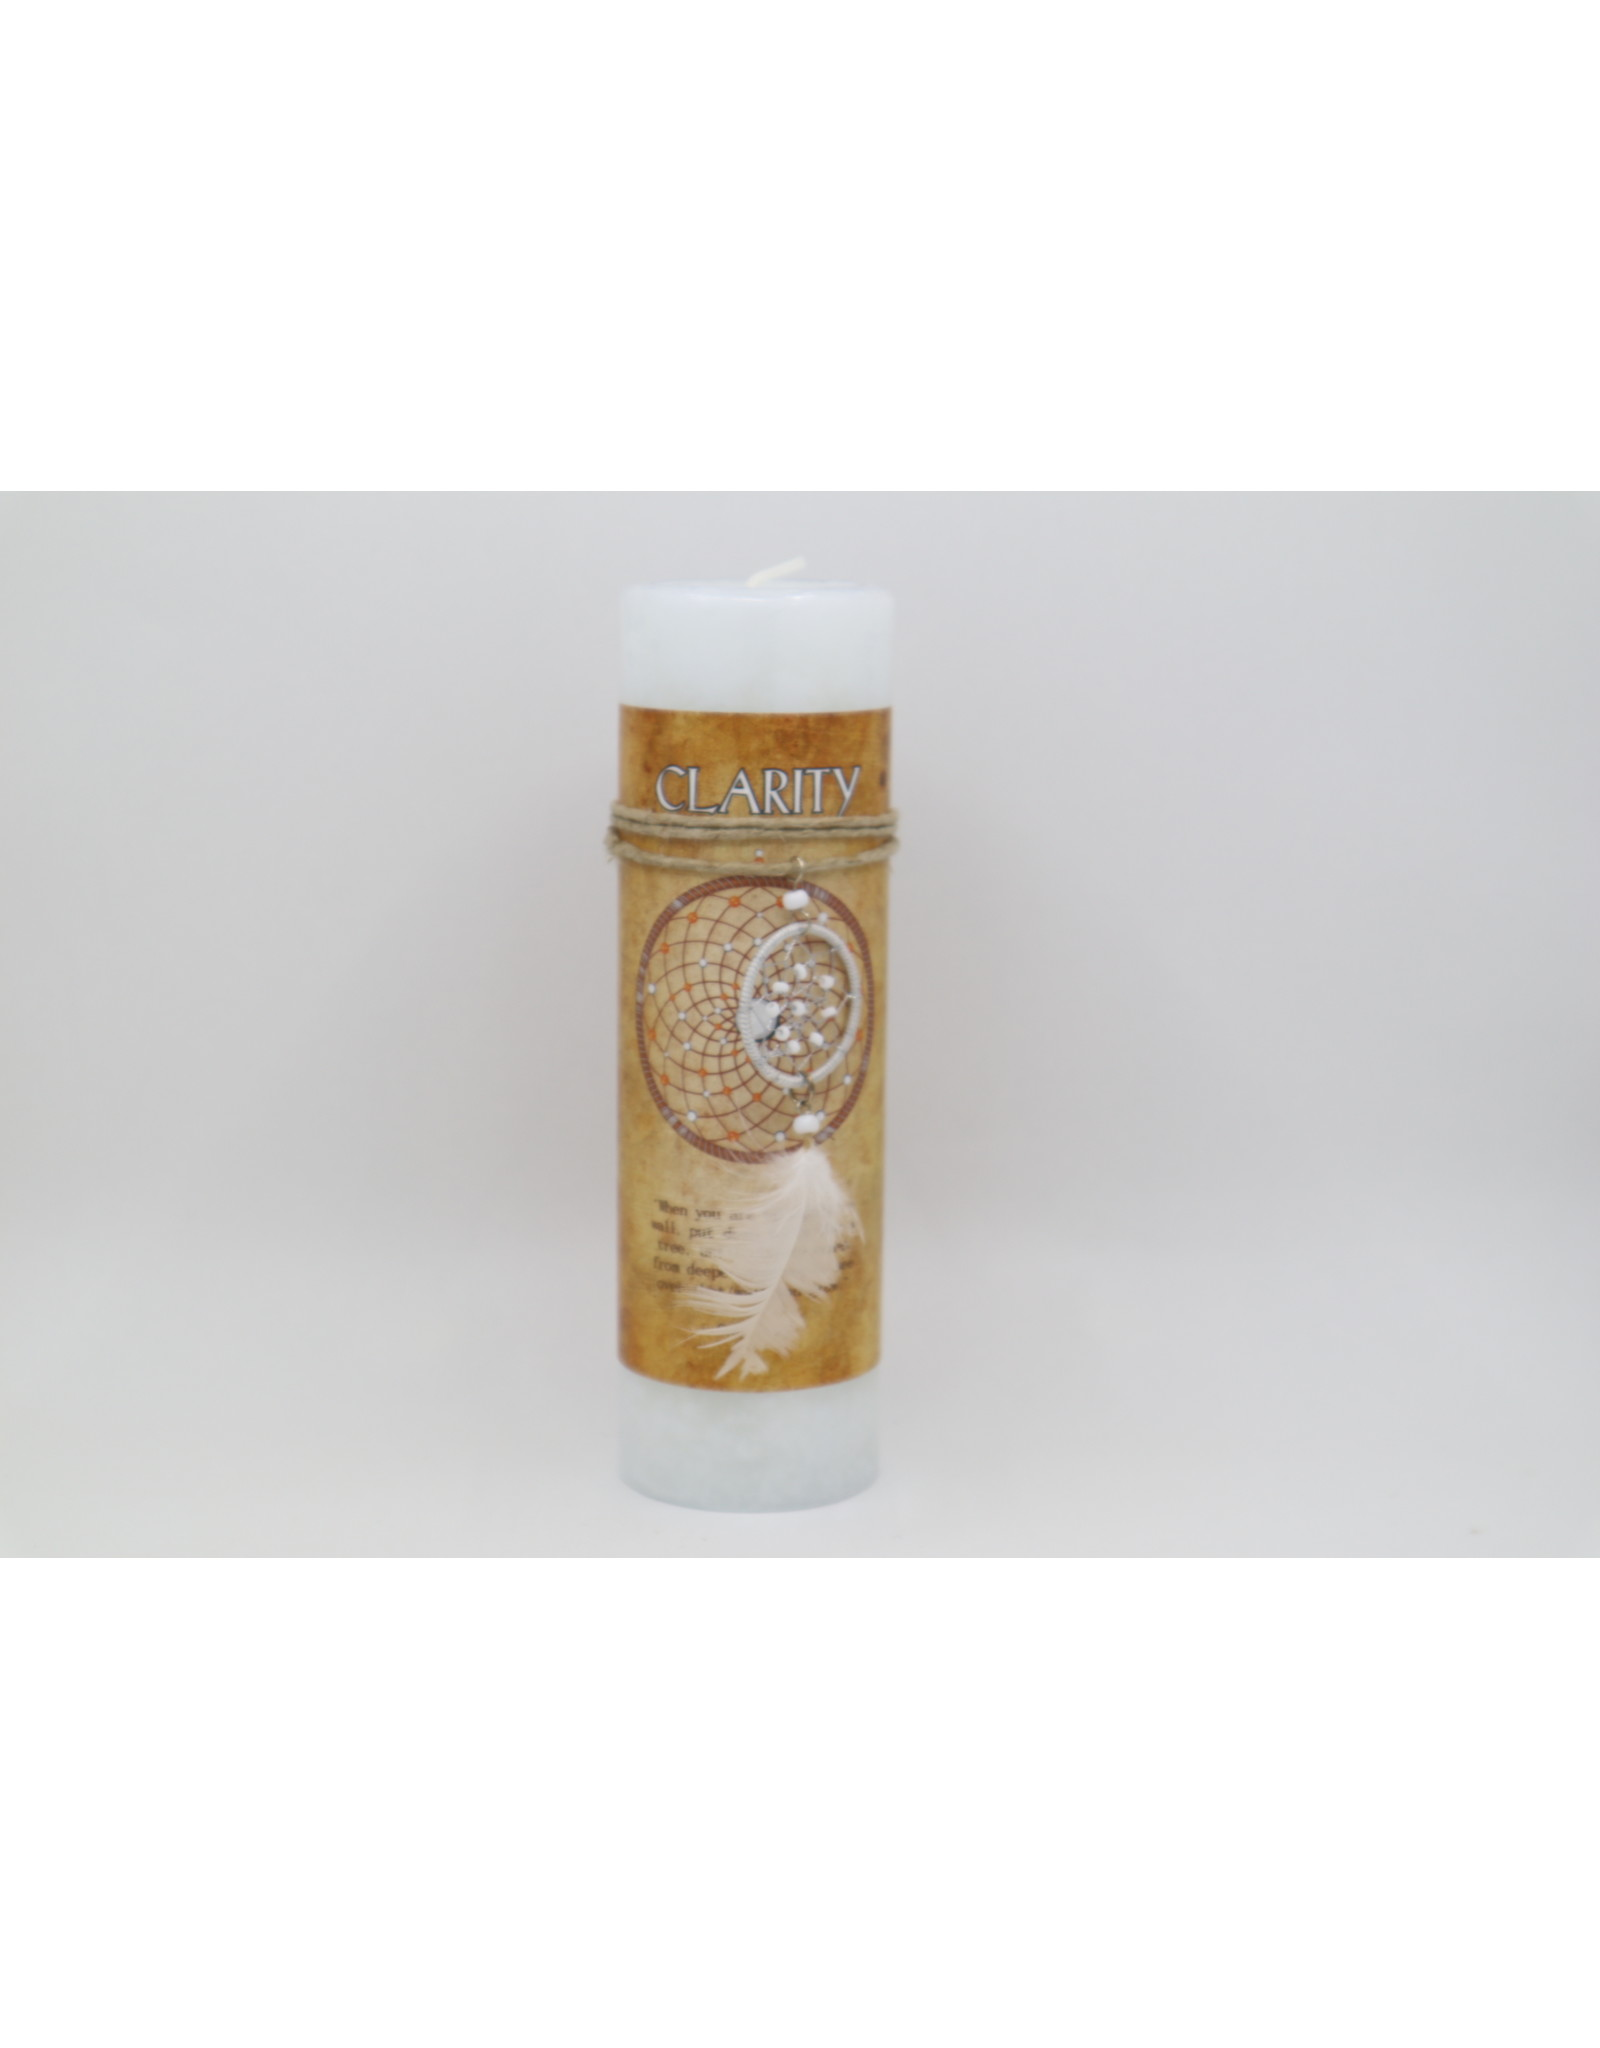 Dreamcatcher Candle - Clarity